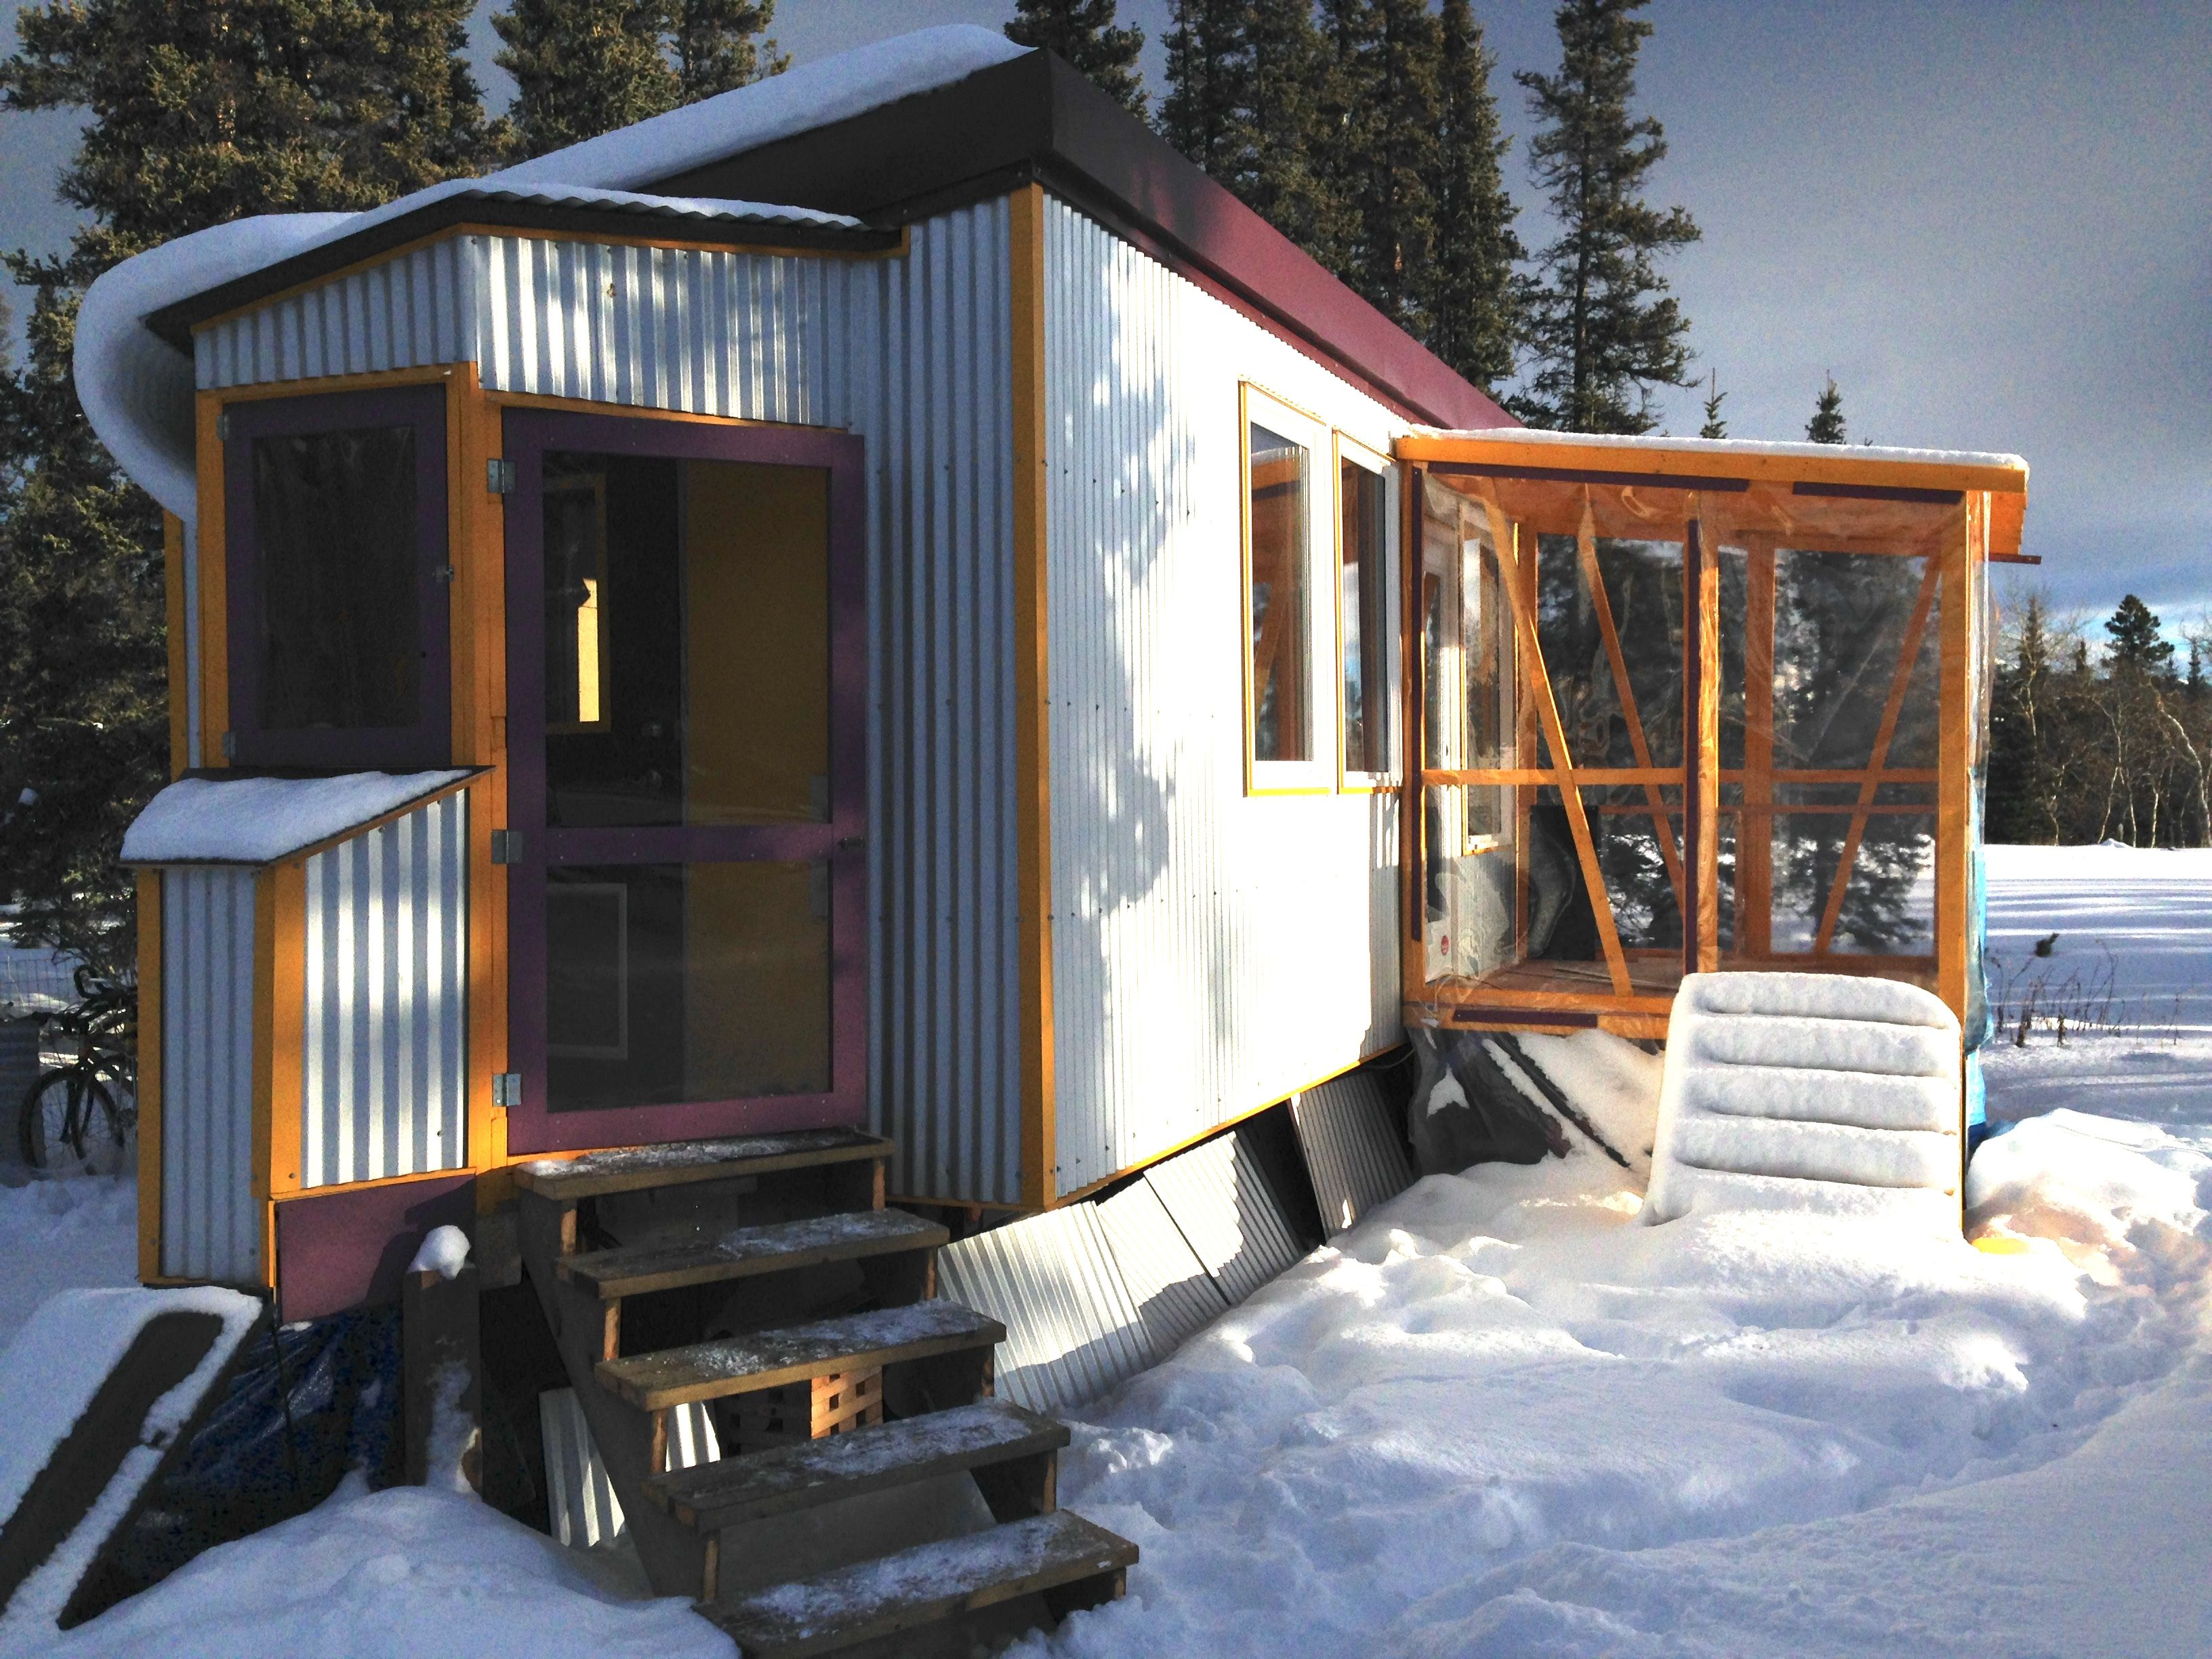 A tiny house for sale on one level built to handle arctic cold to